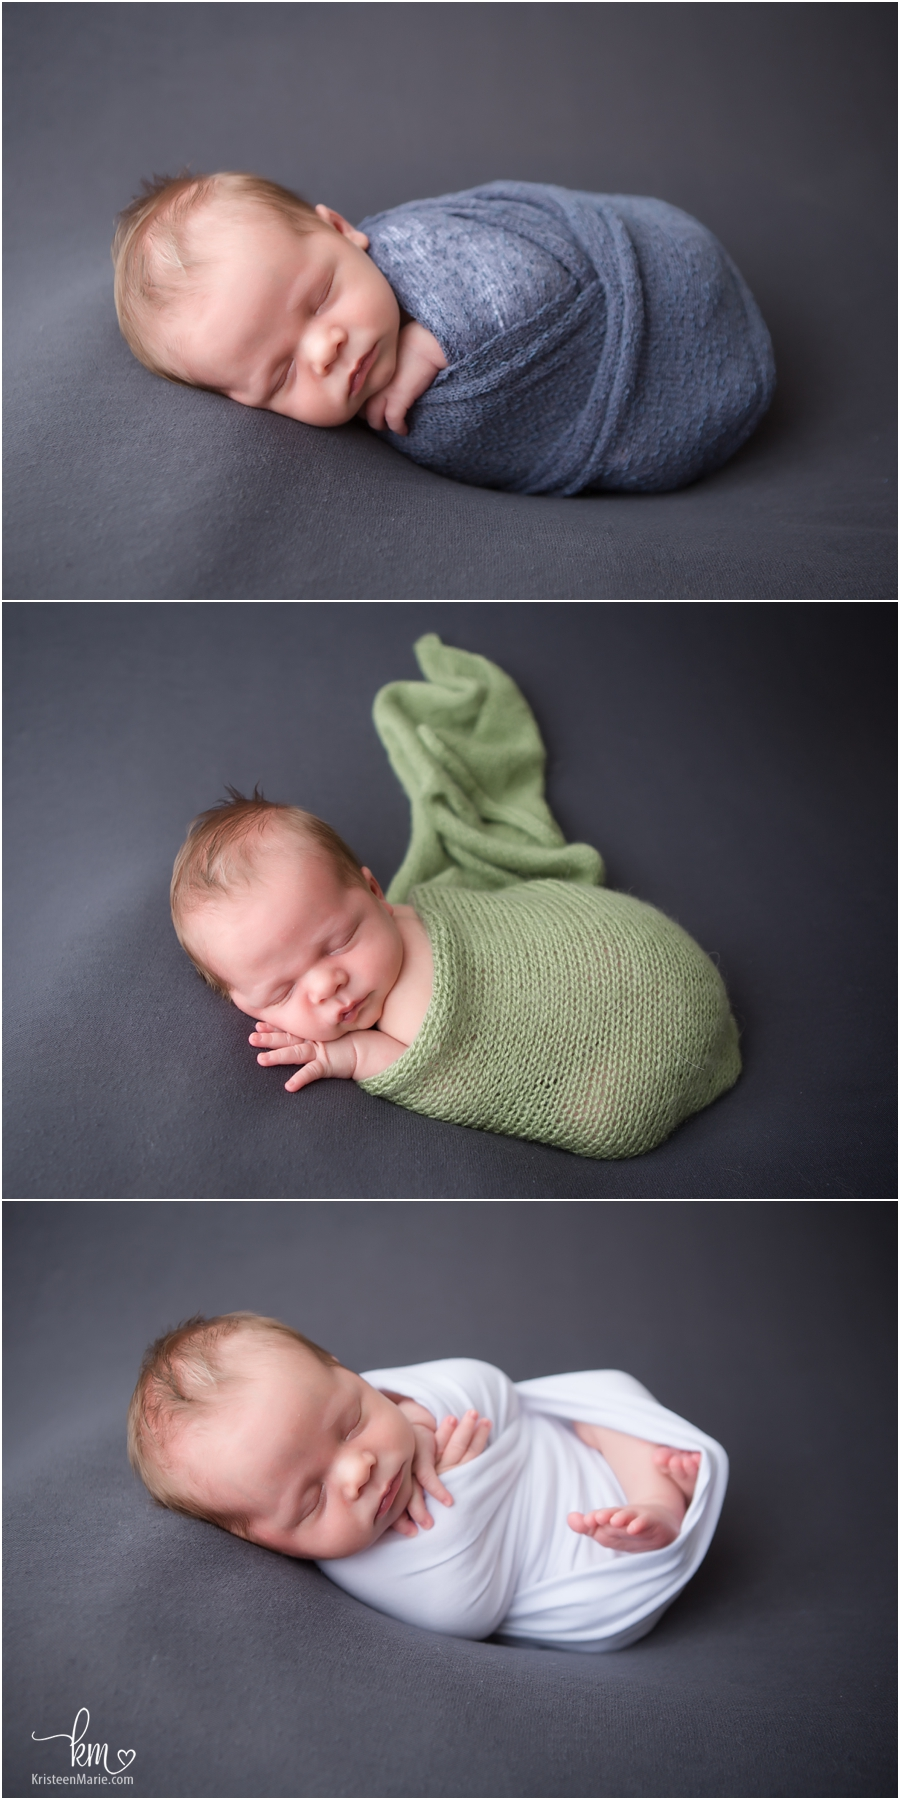 Just the baby - newborn pictures on grey backdrop